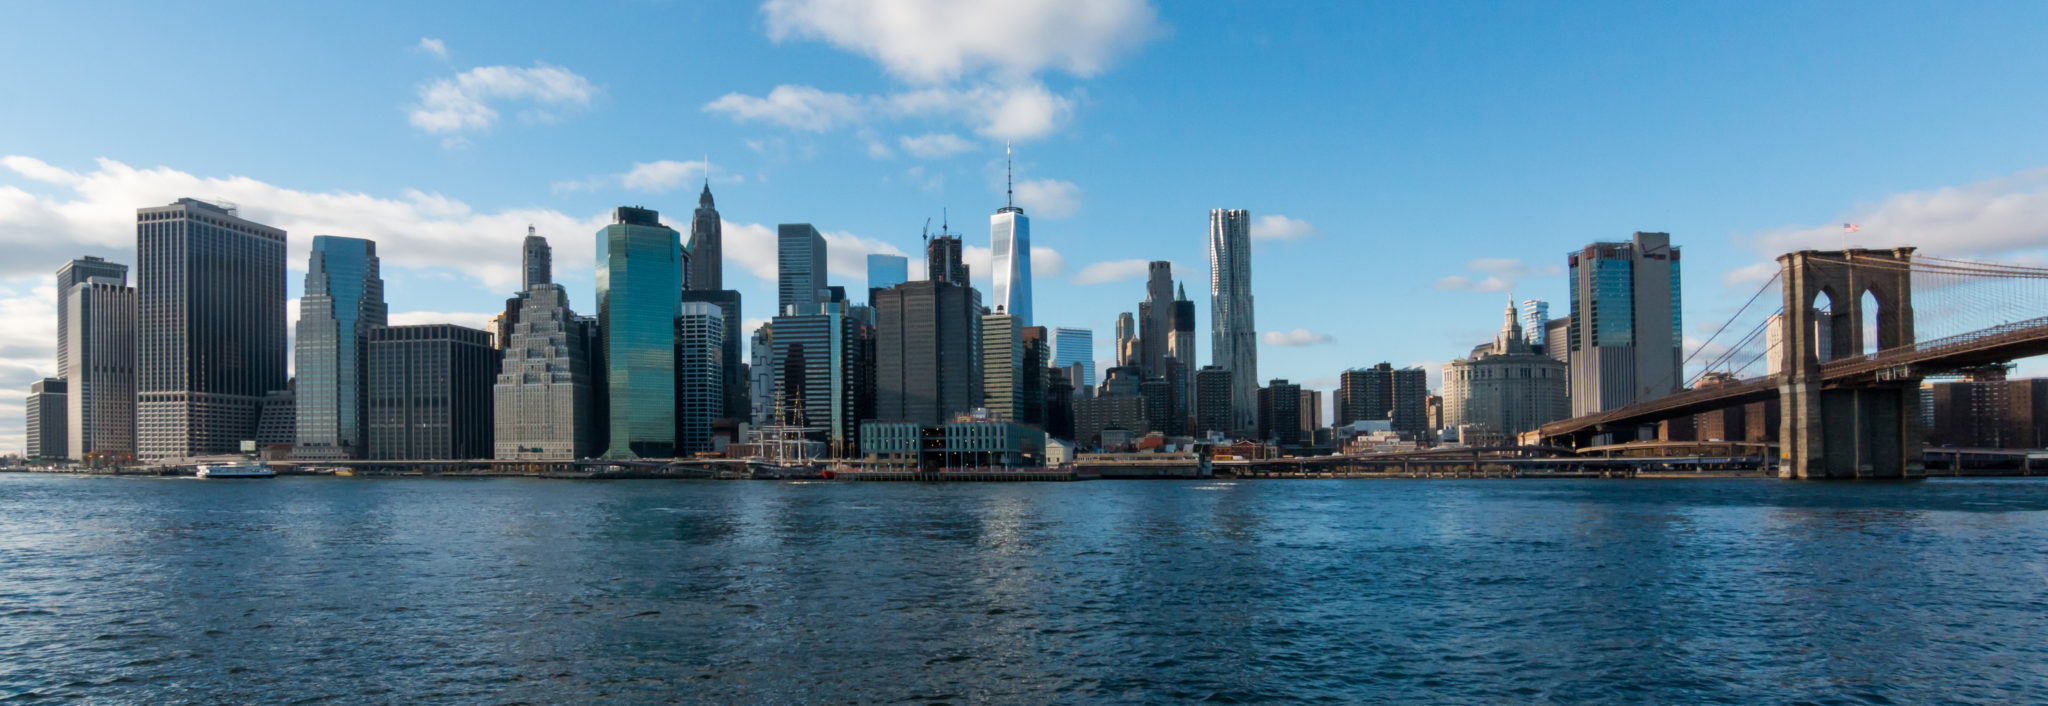 New York Skyline II